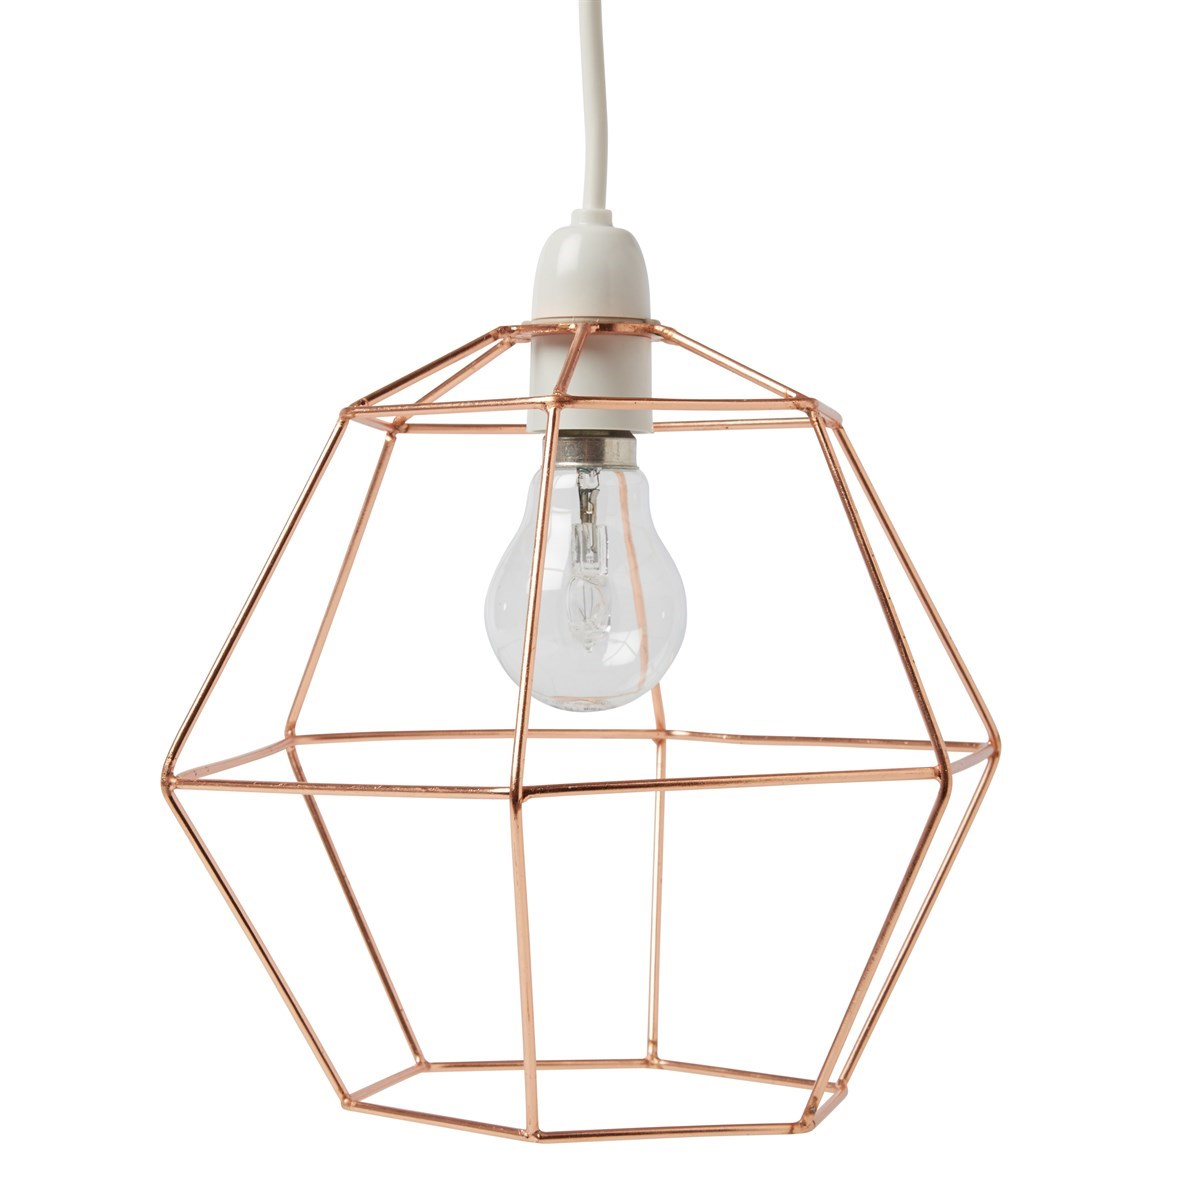 Copper wire hexagon lampshade copper wire hexagon lampshade default image greentooth Image collections